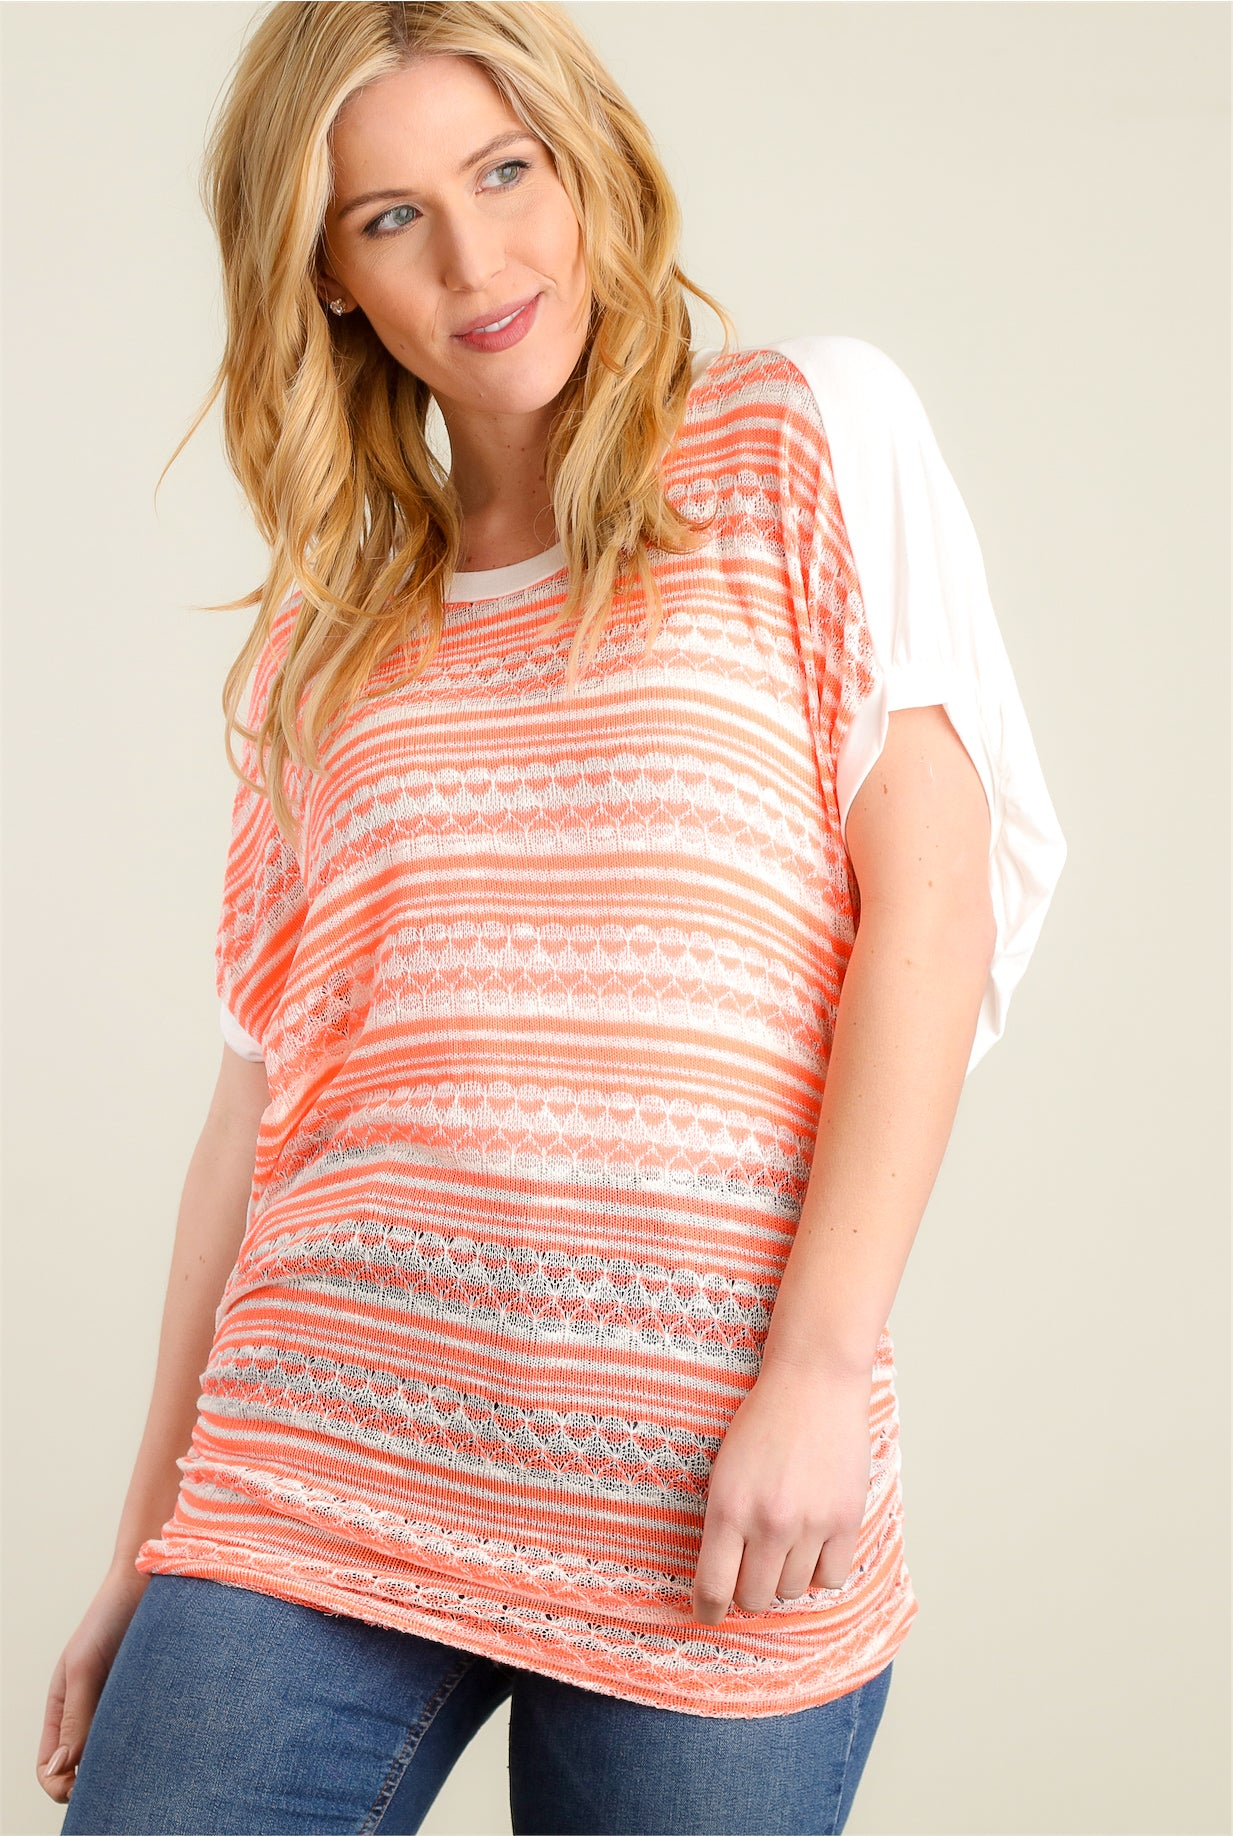 Neon Orange Design Tunic